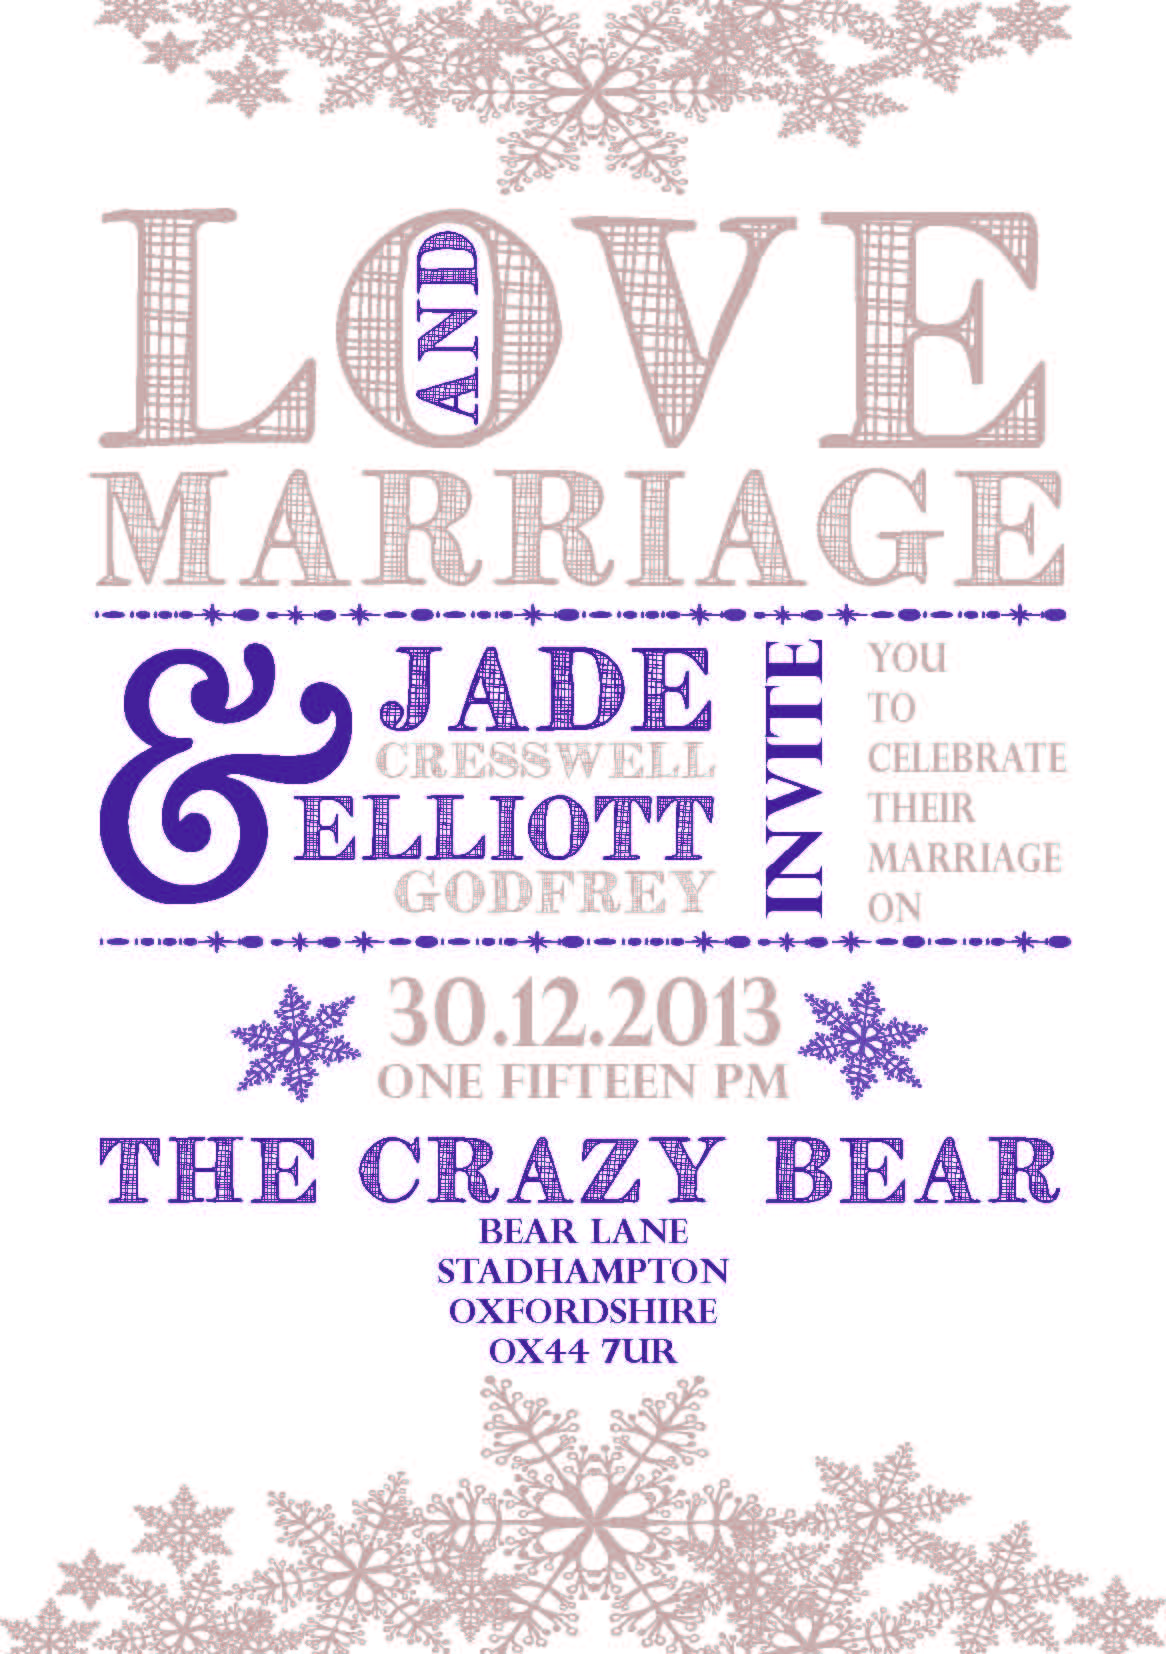 Wedding Invitation Wordings For Friends From Bride And Groom ...